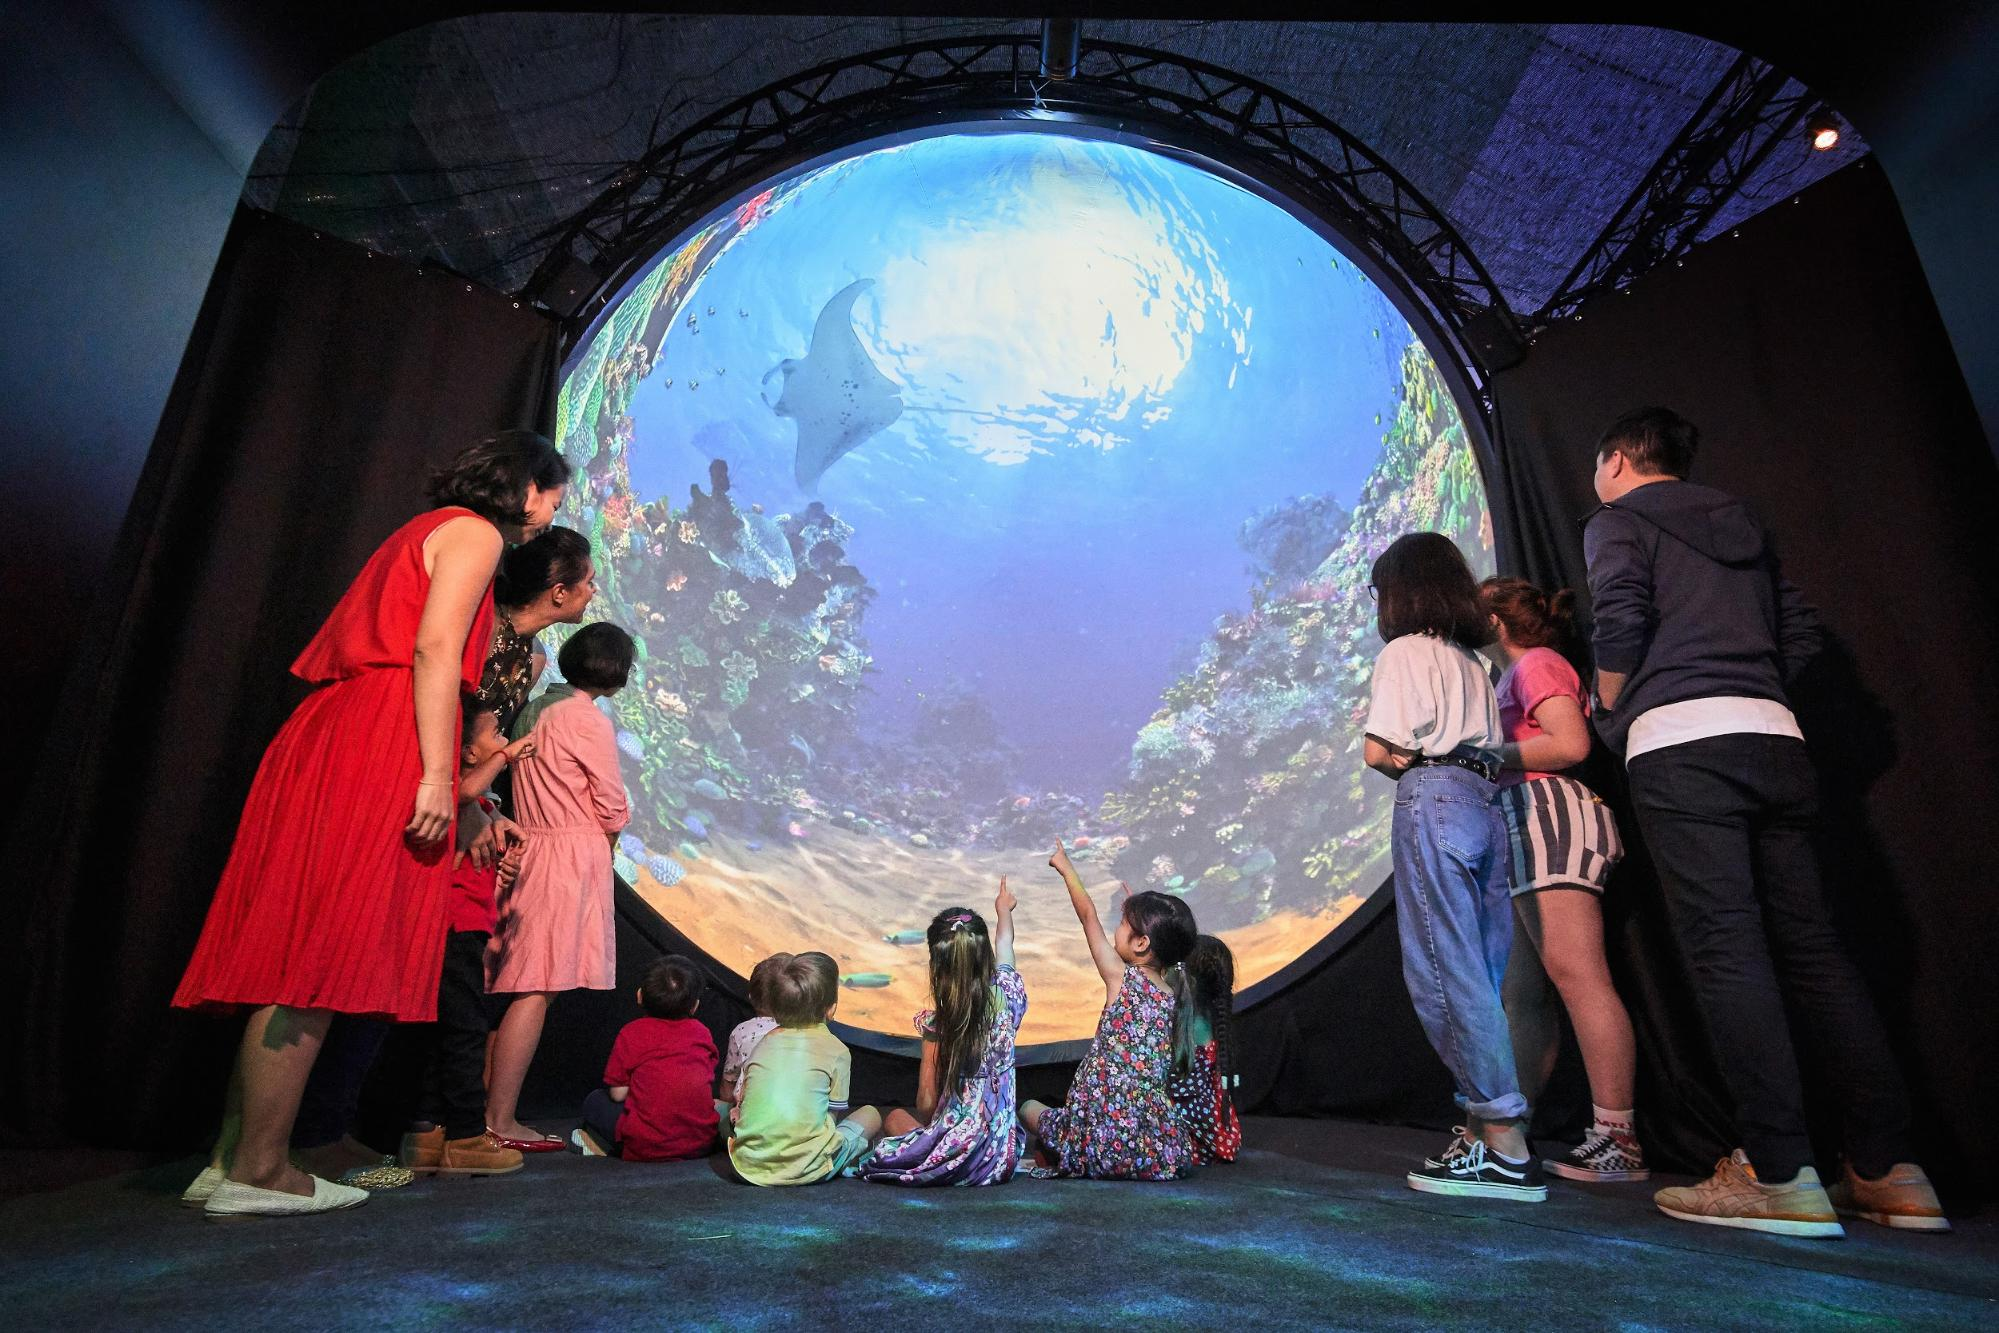 submarine dome projection at living worlds exhibition, things to do december 2020